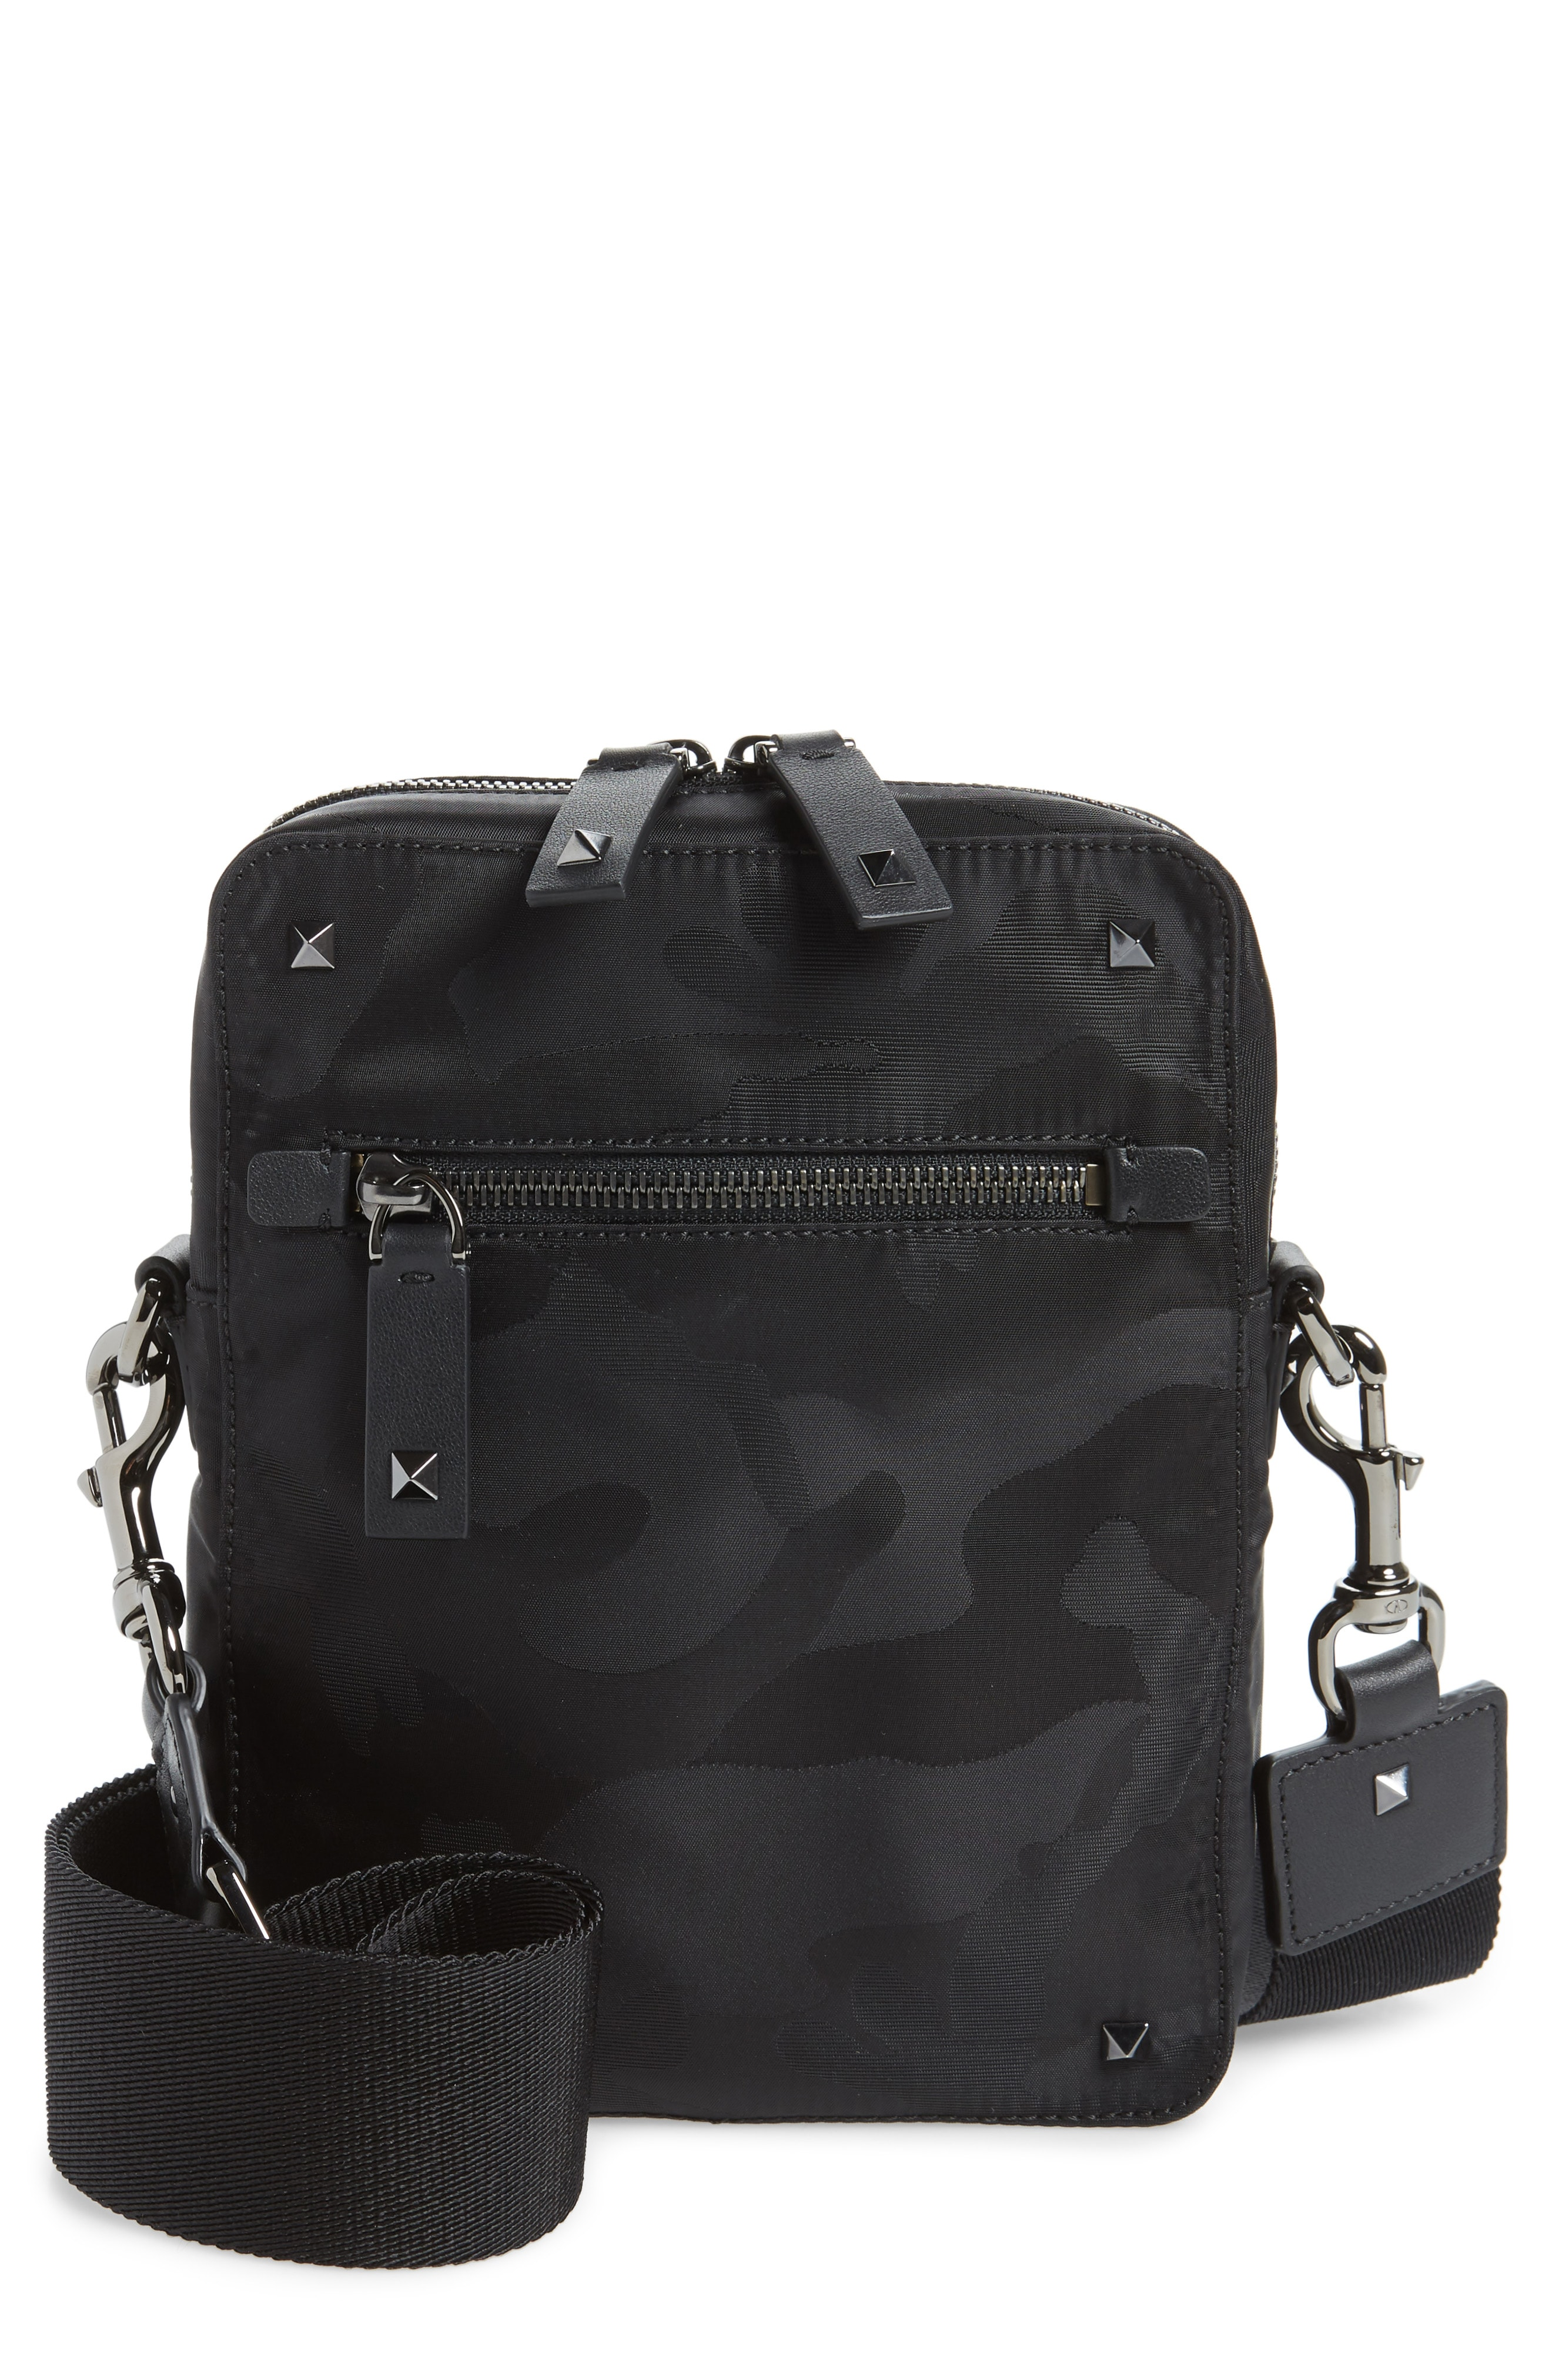 1d82e2f630a Valentino Backpack Camouflage | Building Materials Bargain Center